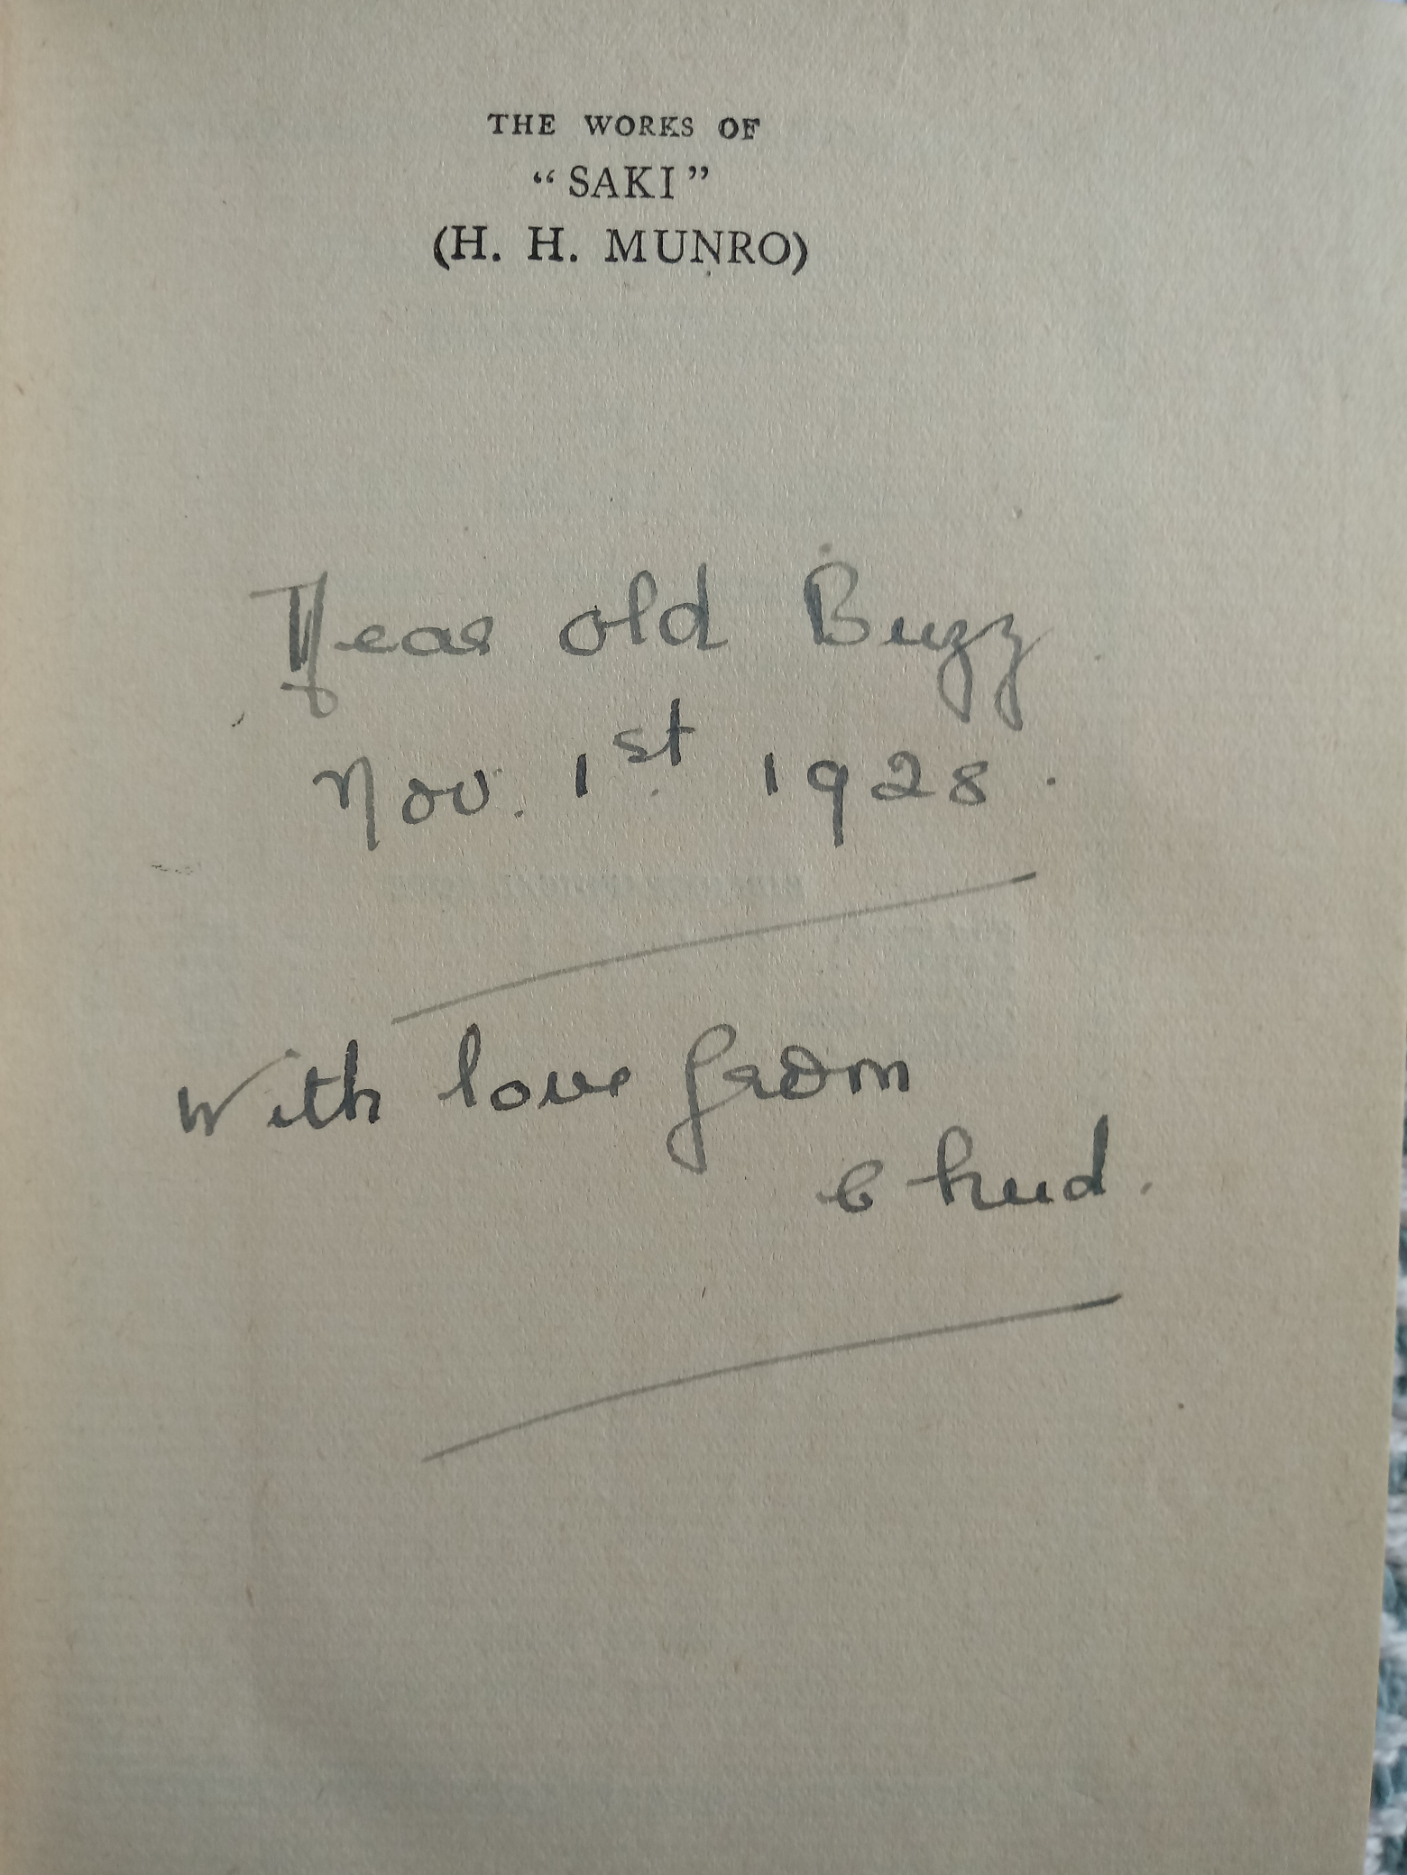 The Unbearable Bassington by Saki ( H. H. Munro) 244 pages with inscription on inside page Published - Image 3 of 4